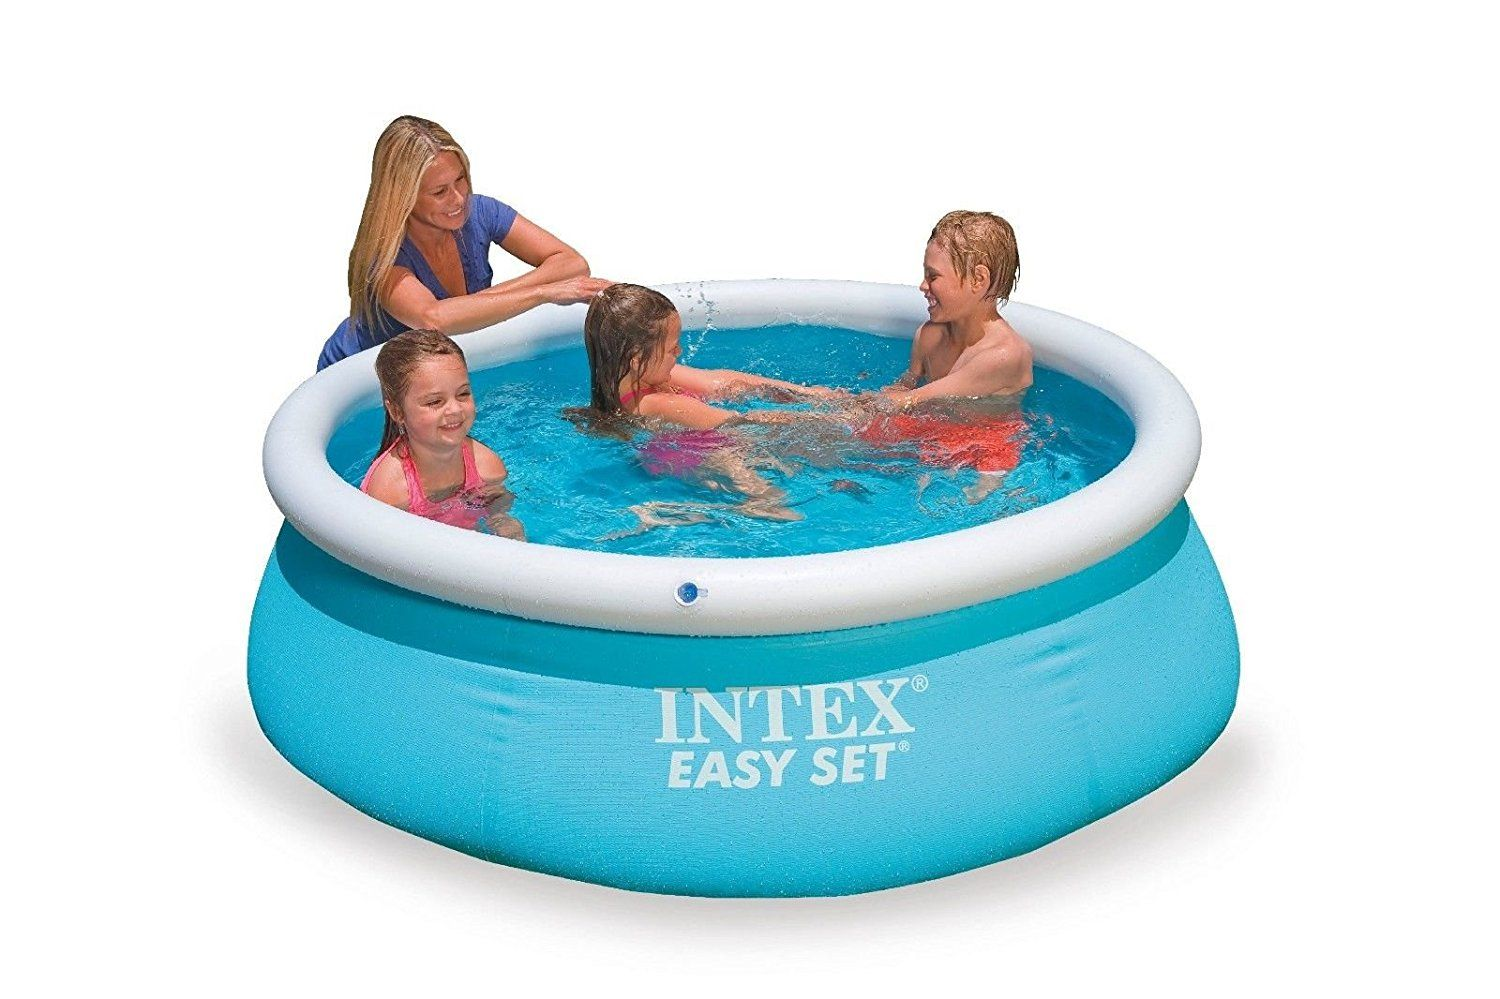 Intex 28 6ft X 20in H Amazon 234 Gallons Easy Set Pools Inflatable Swimming Pool Children Swimming Pool